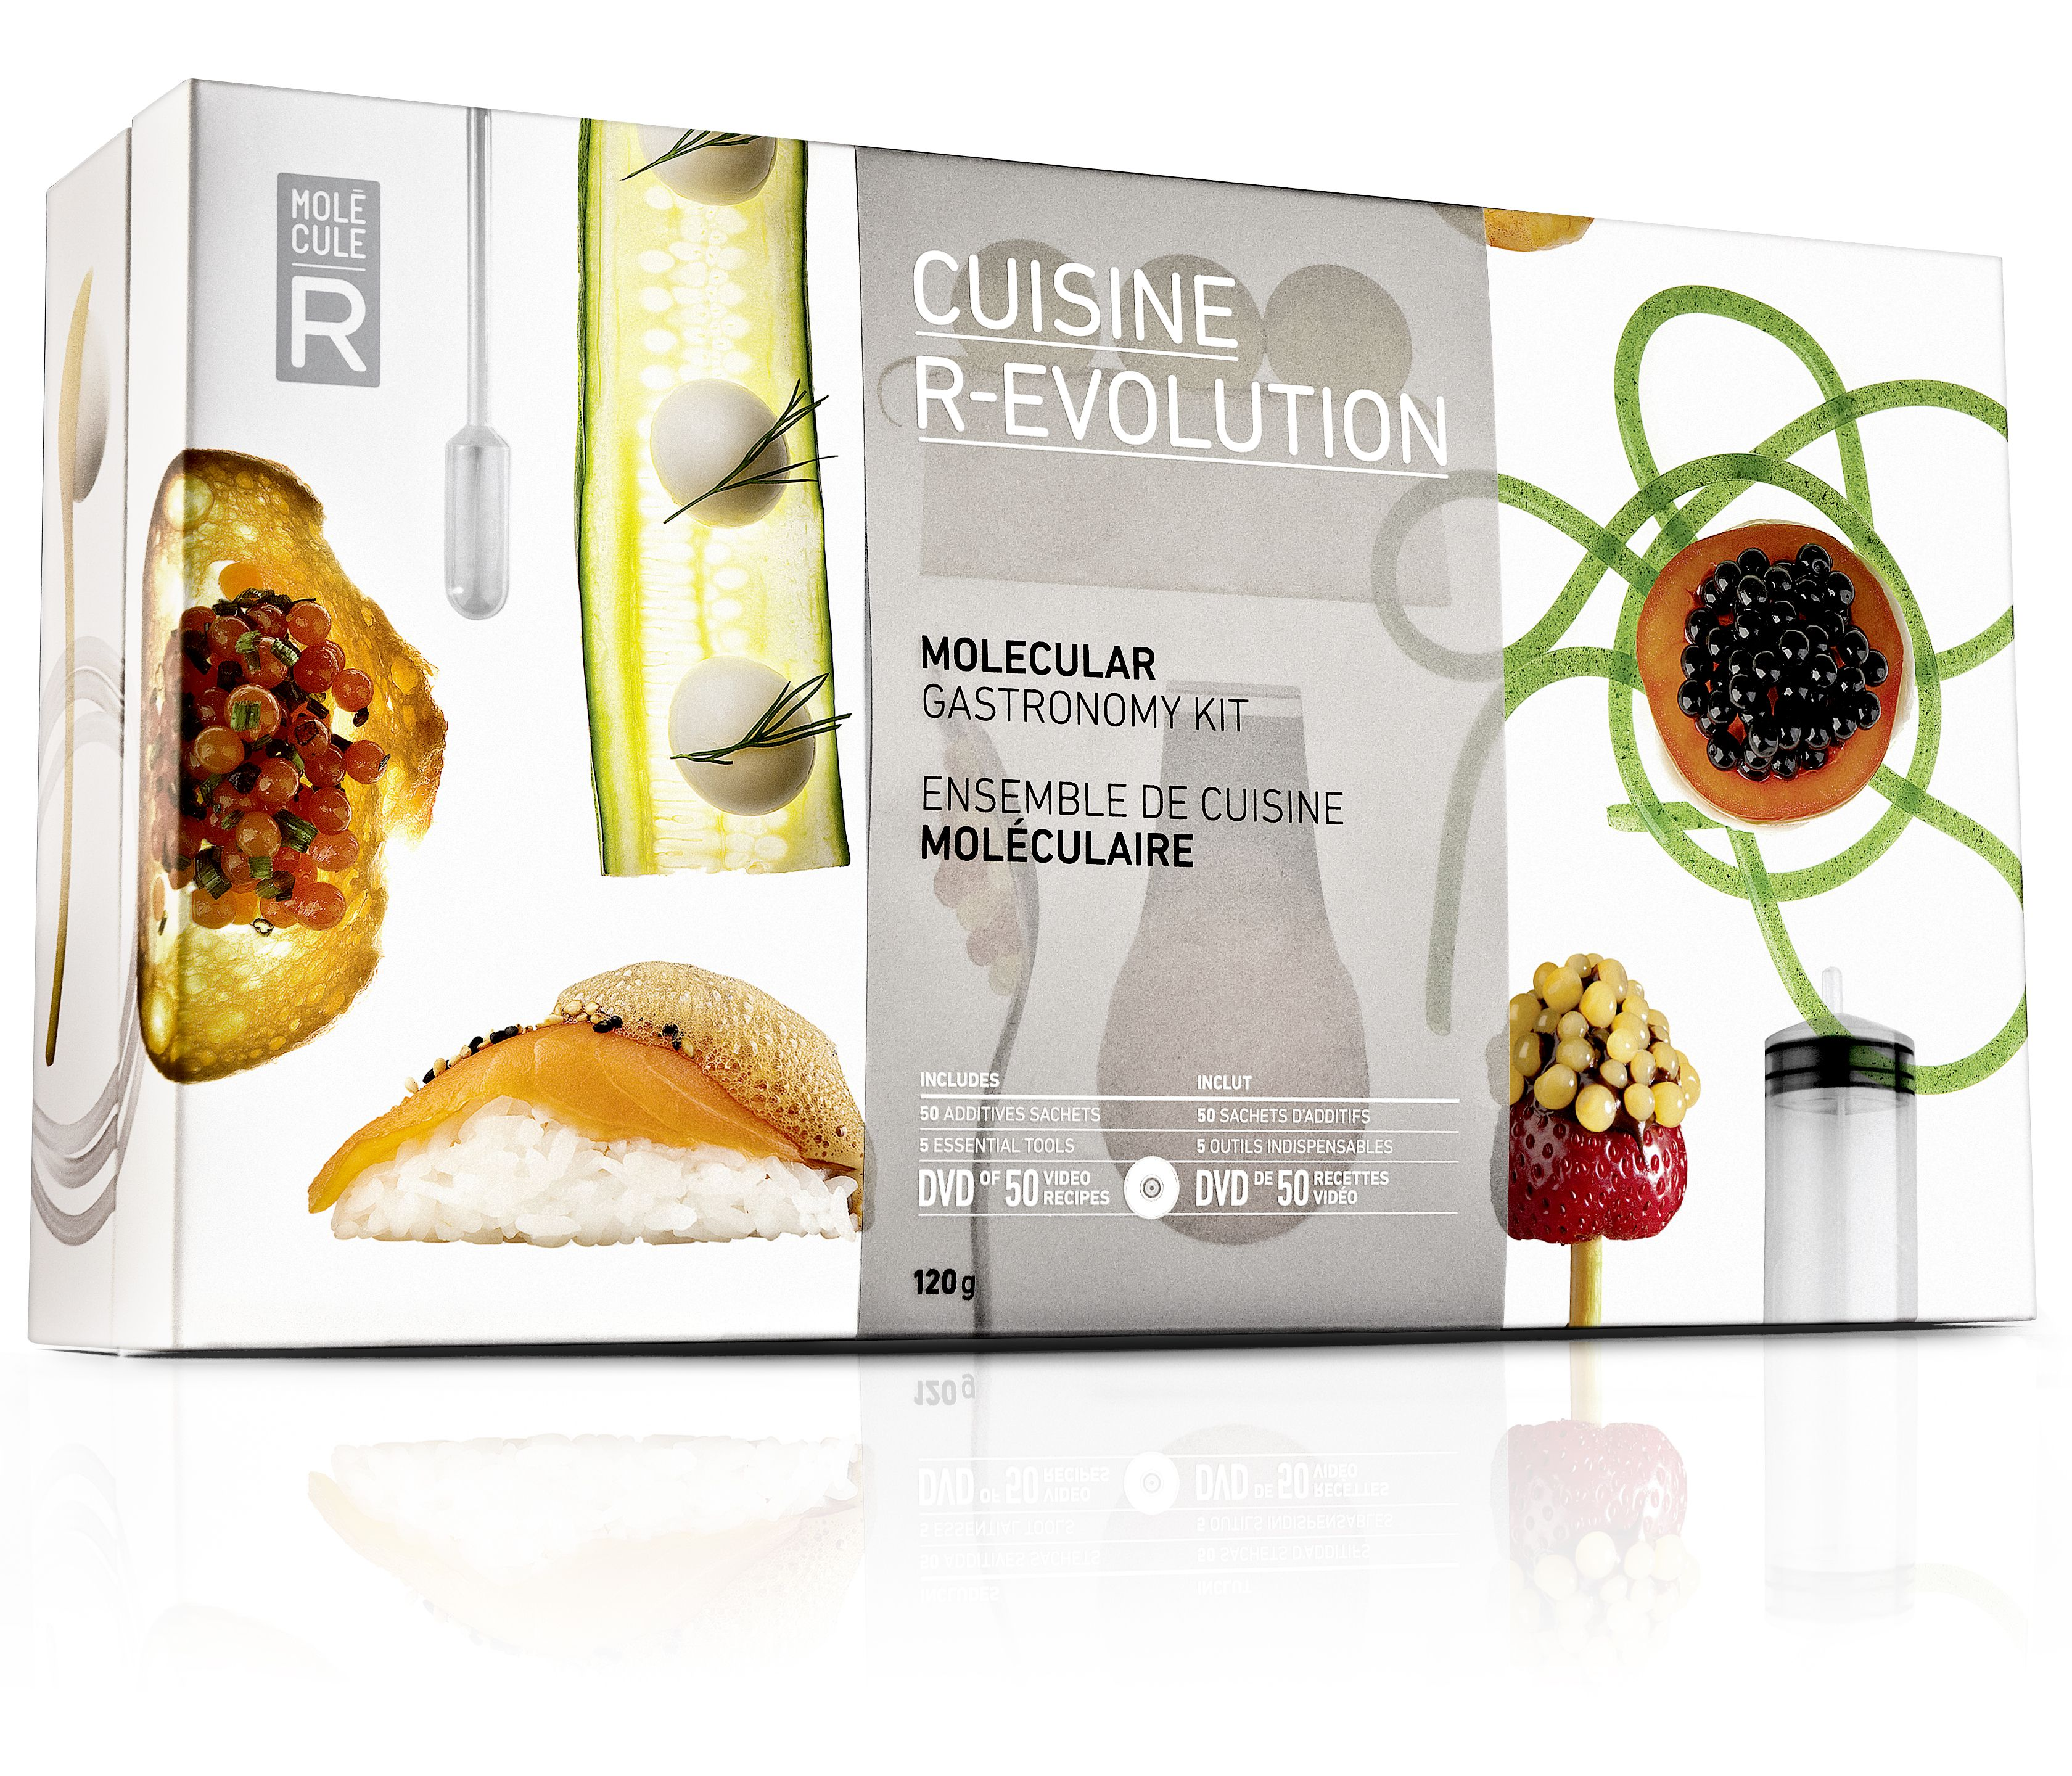 Bring your culinary creativity to the next level and impress your